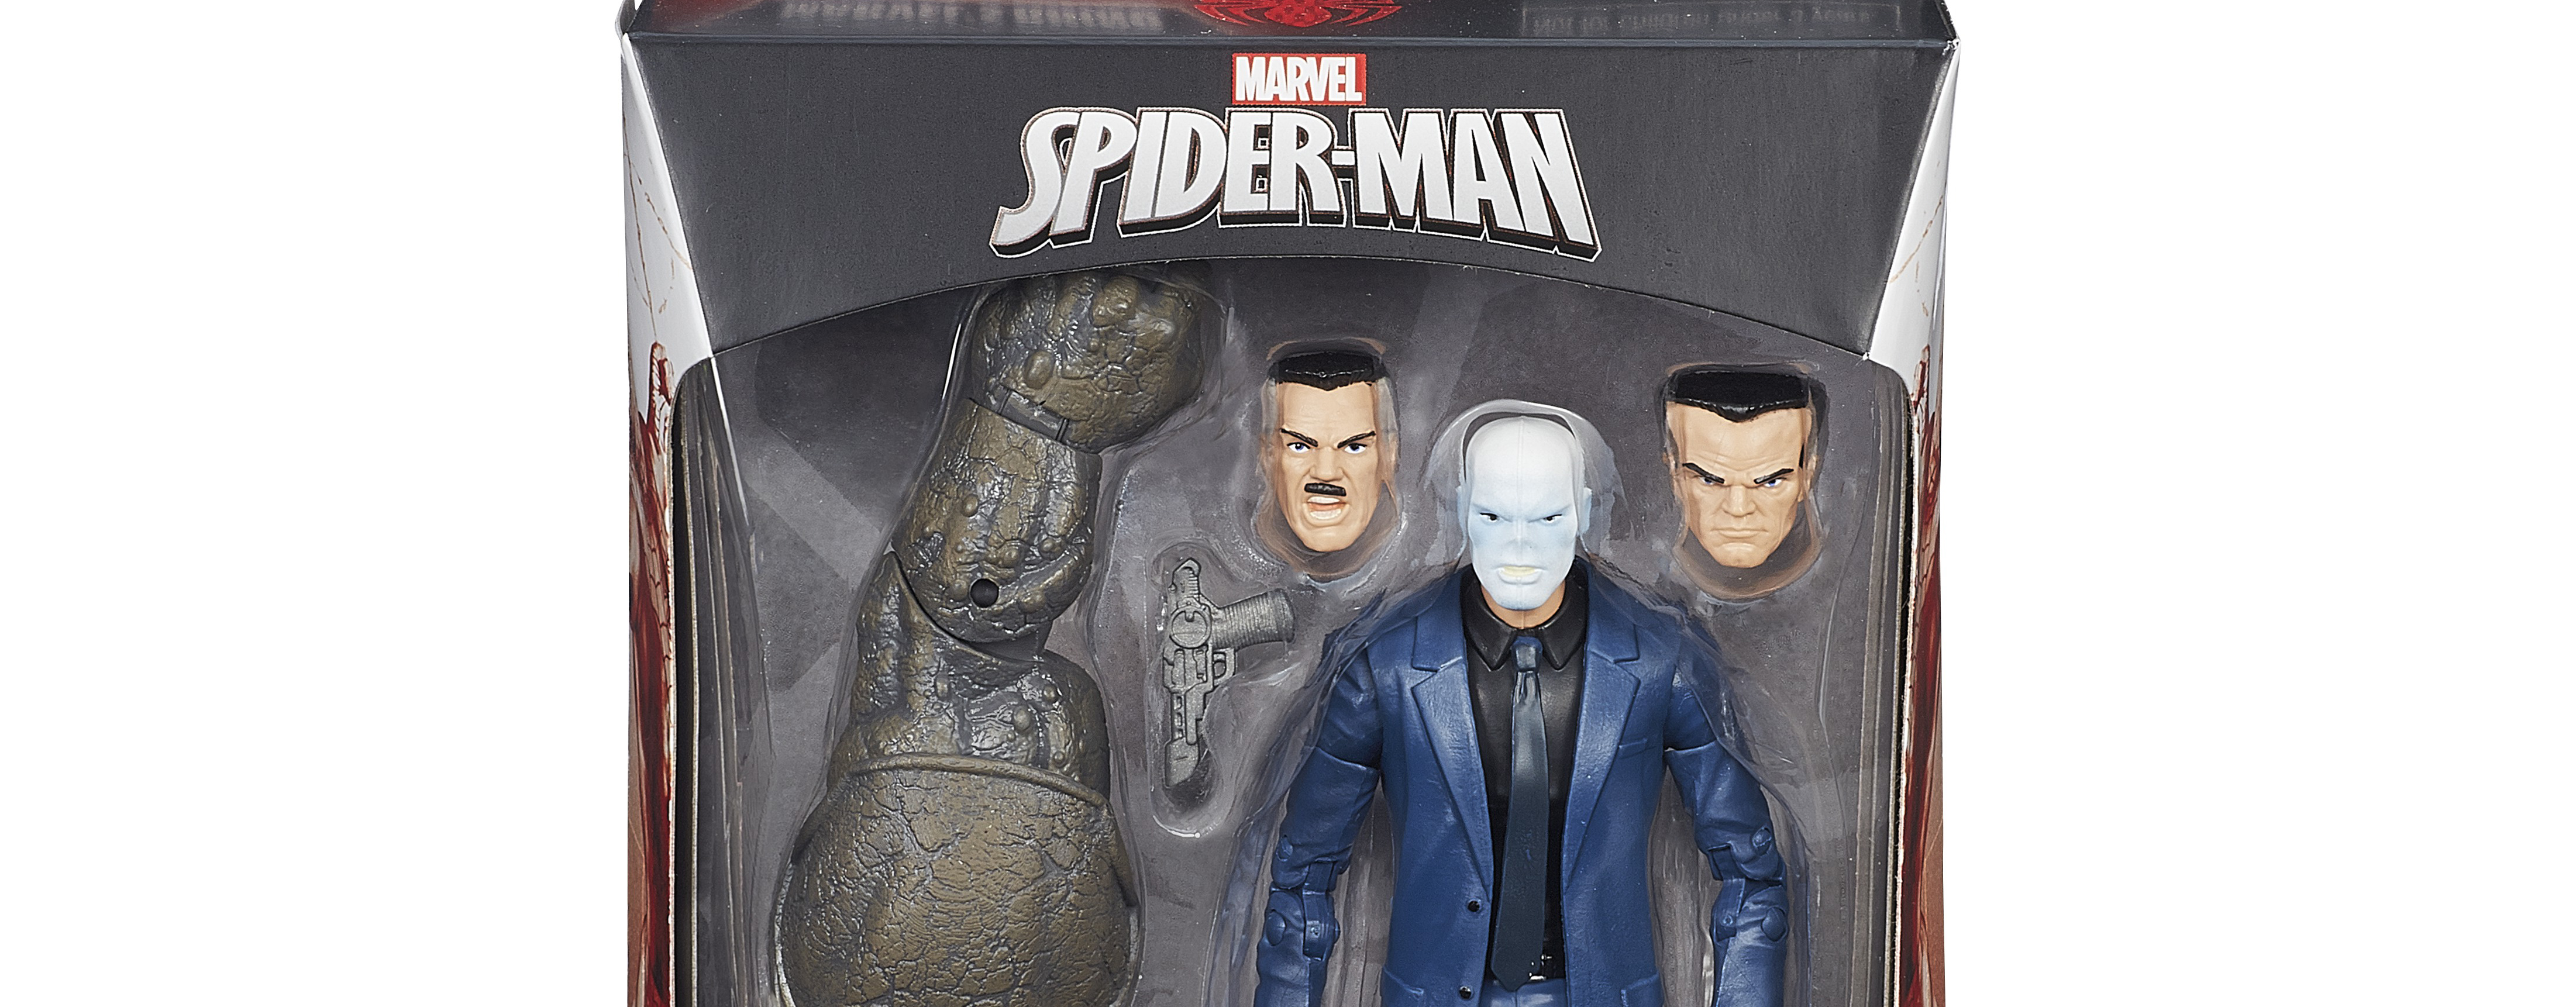 Hasbro Marvel Legends Spider-Man Rhino Series Carded!